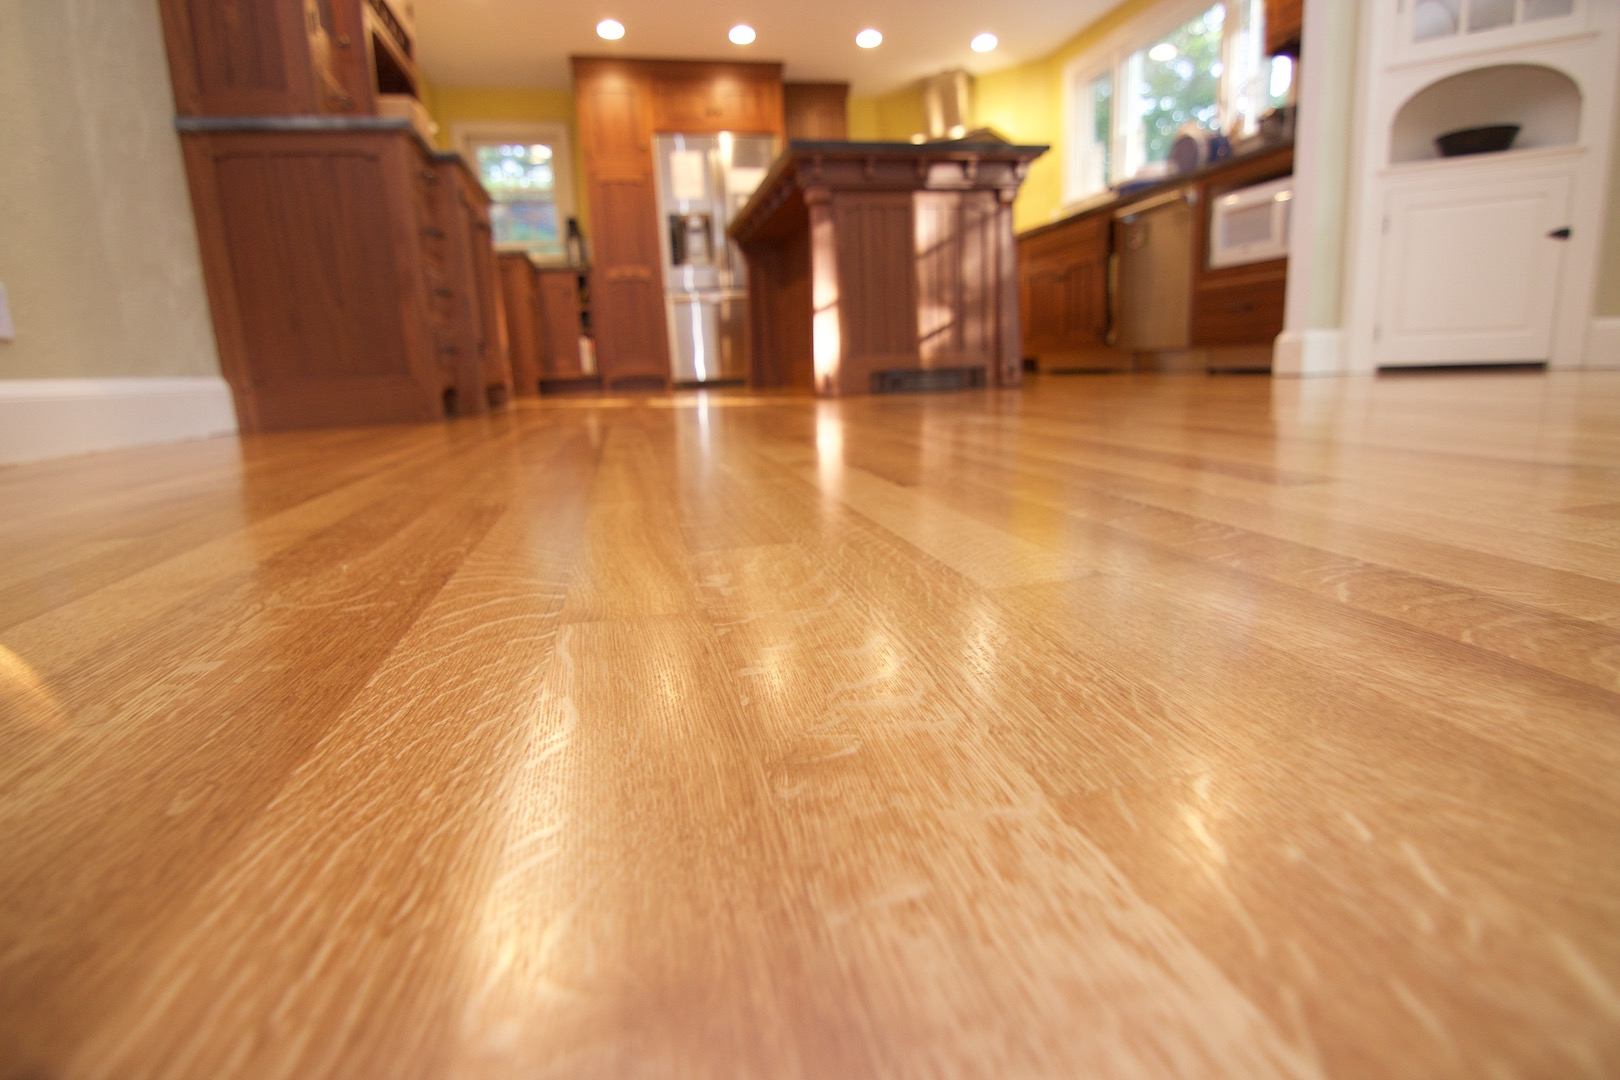 Permalink to Wooden Floor Polyurethane Finish